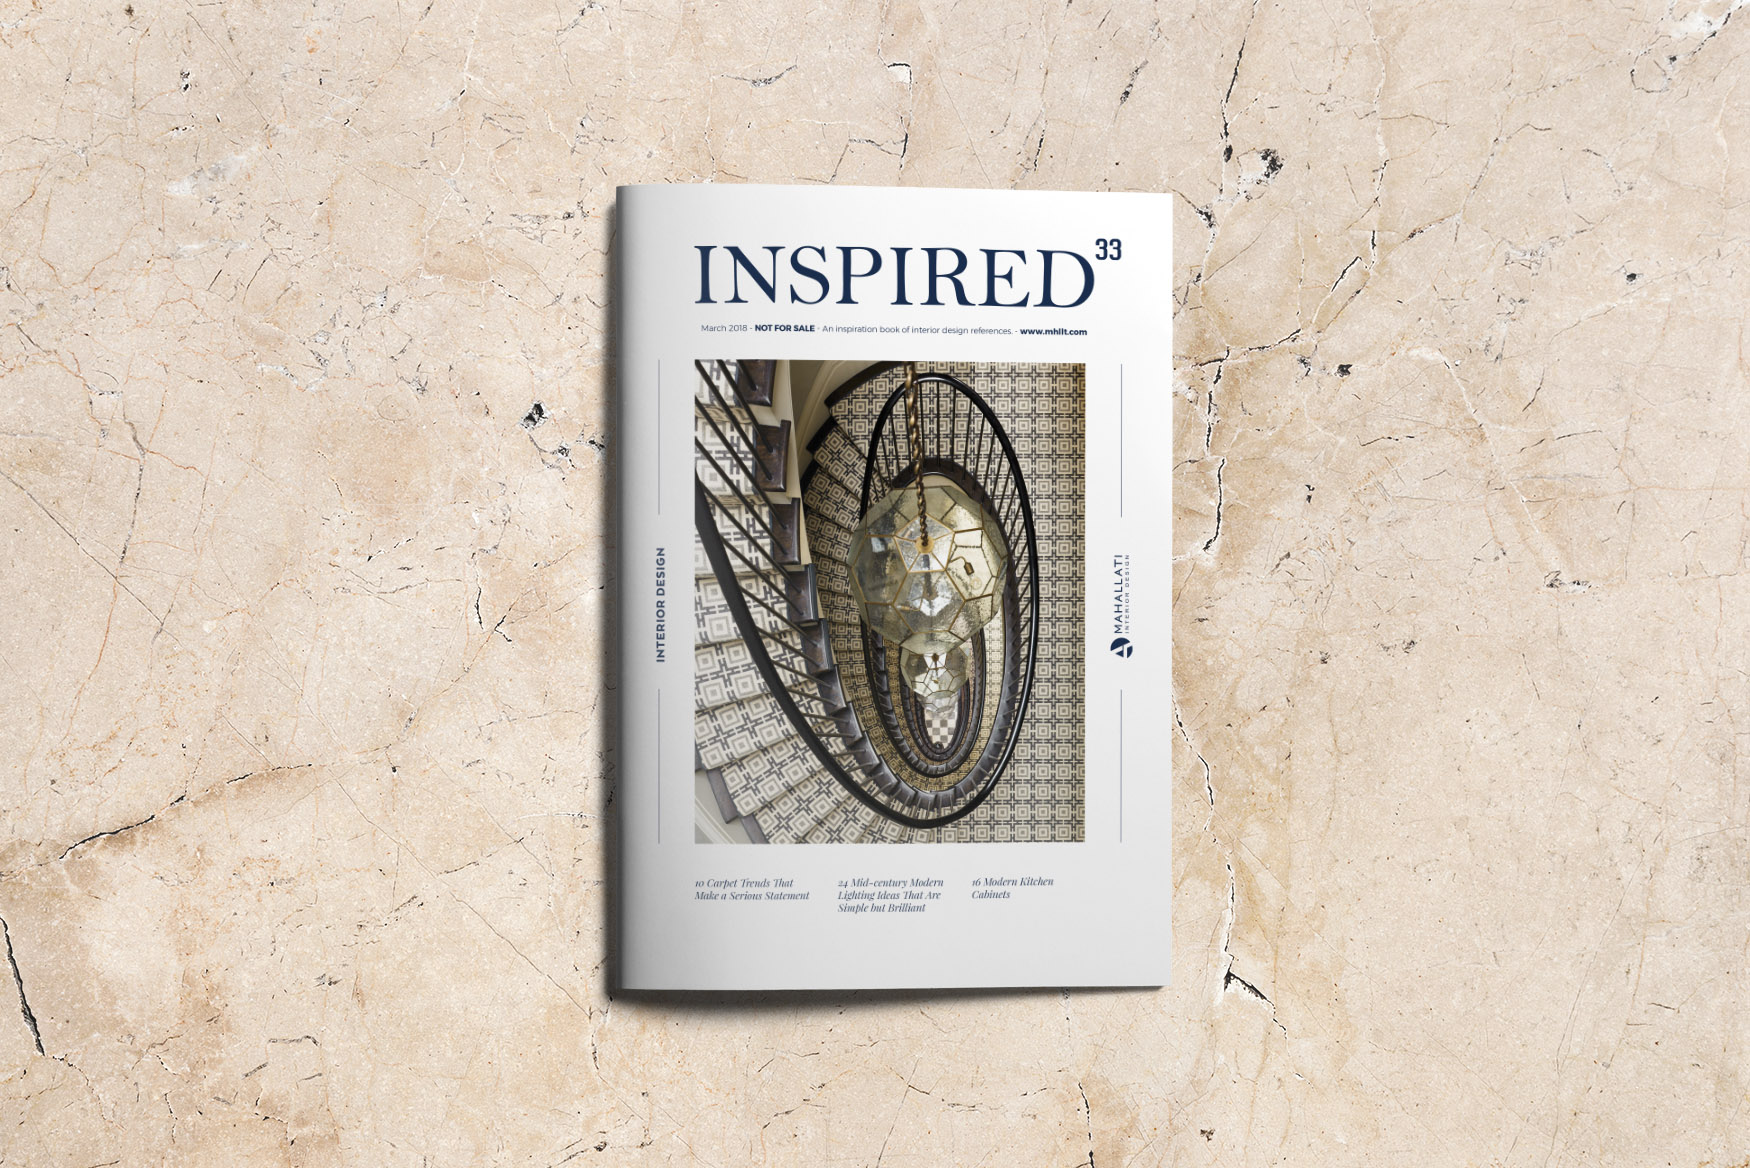 Inspired Vol 33 - March 2018